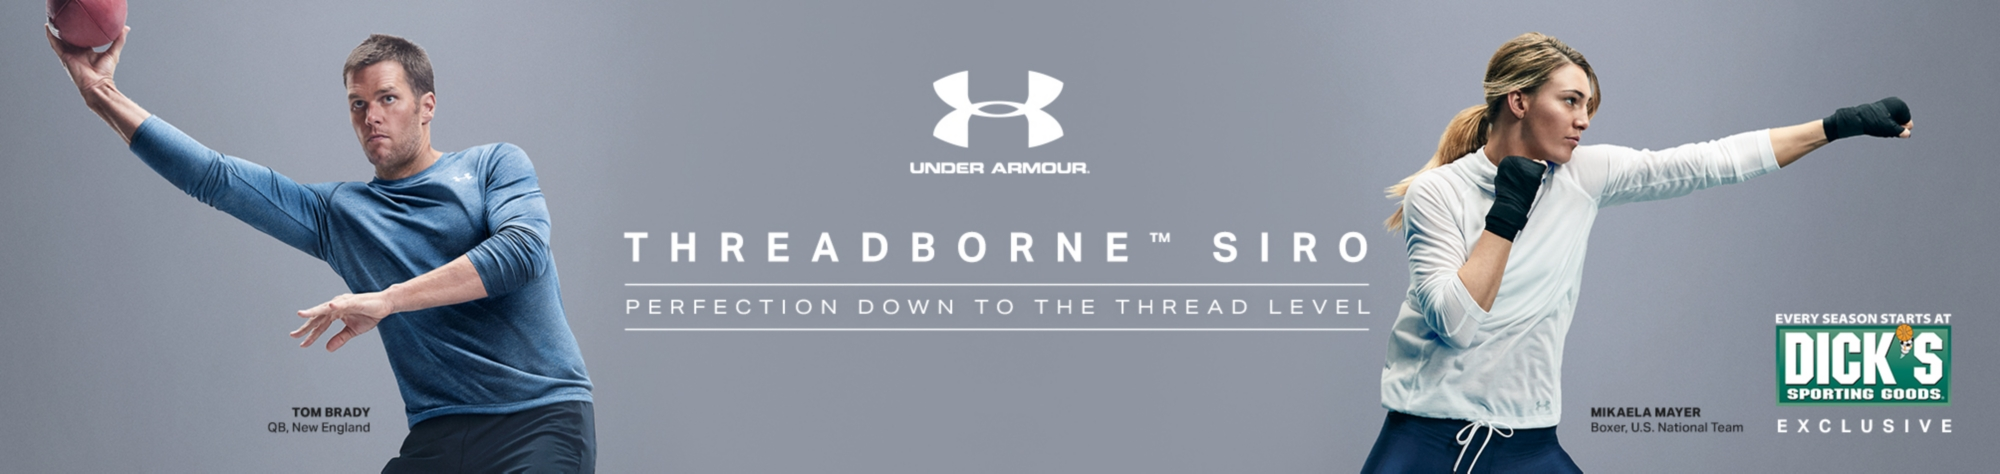 Under Armour Threadborne Siro